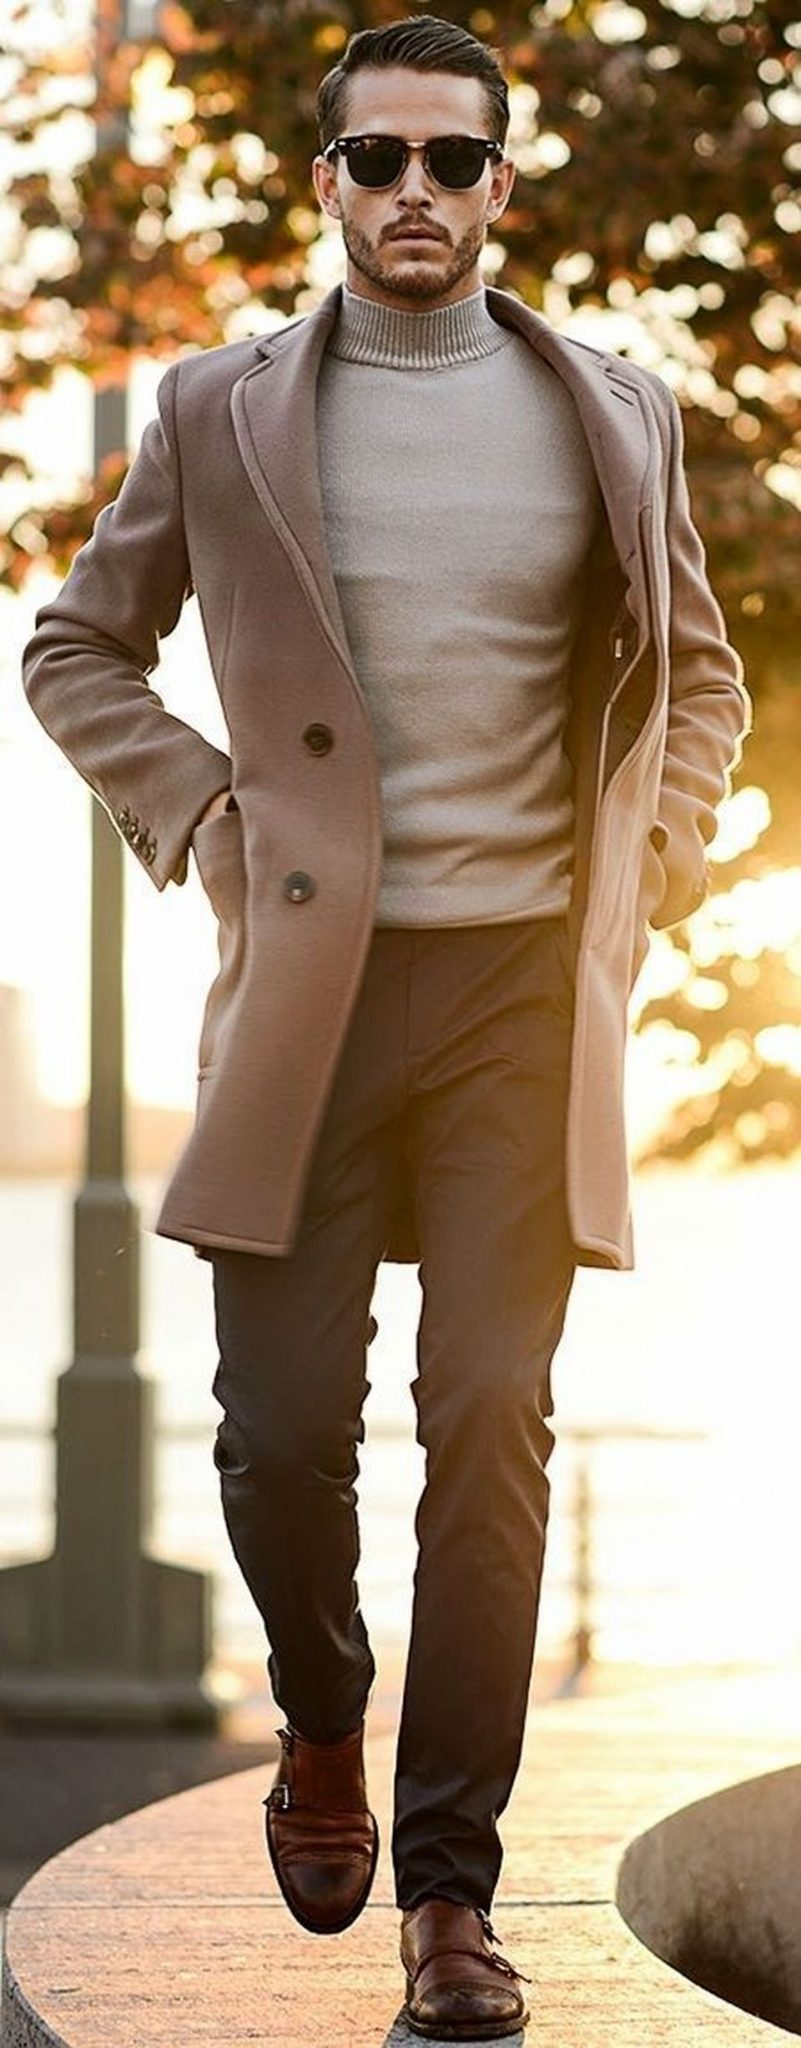 10 Style Tips For Young Men How To Dress Sharp As A Younger 89